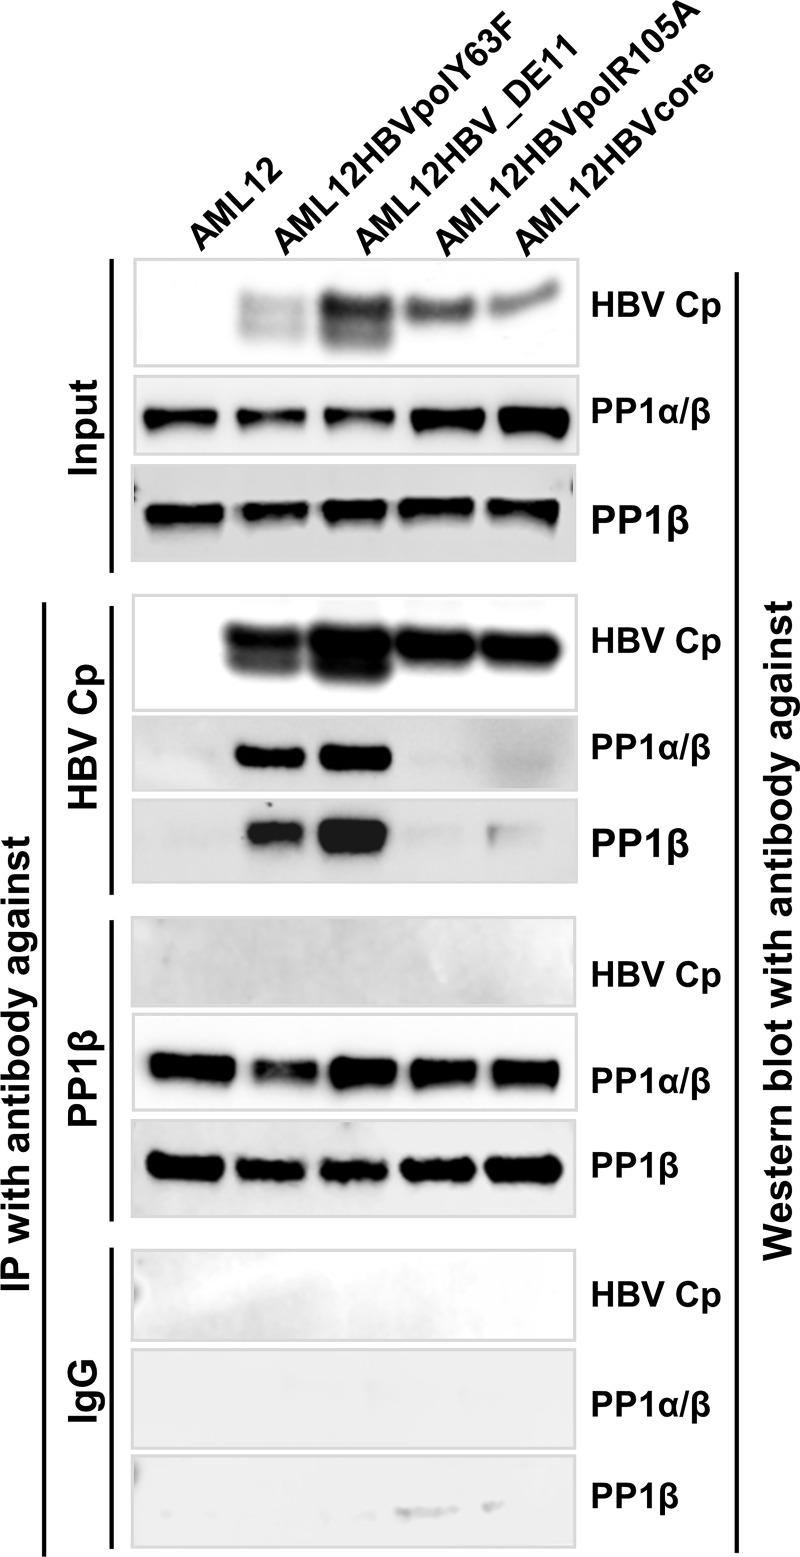 PP1α/β was encapsidated into pgRNA and DNA-containing nucleocapsids. AML12 and its derived cell lines supporting tet-off inducible accumulation of empty capsids (AML12HBVcore and AML12HBVpolR105A), pgRNA-containing (AML12HBVpolY63F) and both pgRNA- and DNA-containing (AML12HBV_DE11) nucleocapsids were cultured in the absence of tet for 2 days. The cells were lysed with <t>IP</t> <t>lysis</t> <t>buffer.</t> IP assays were performed with an antibody against HBV Cp, PP1β or control IgG. HBV Cp, PP1α and/or β in input cell lysates and immunocomplexes of IP were detected by Western blot assays with the corresponding antibodies.